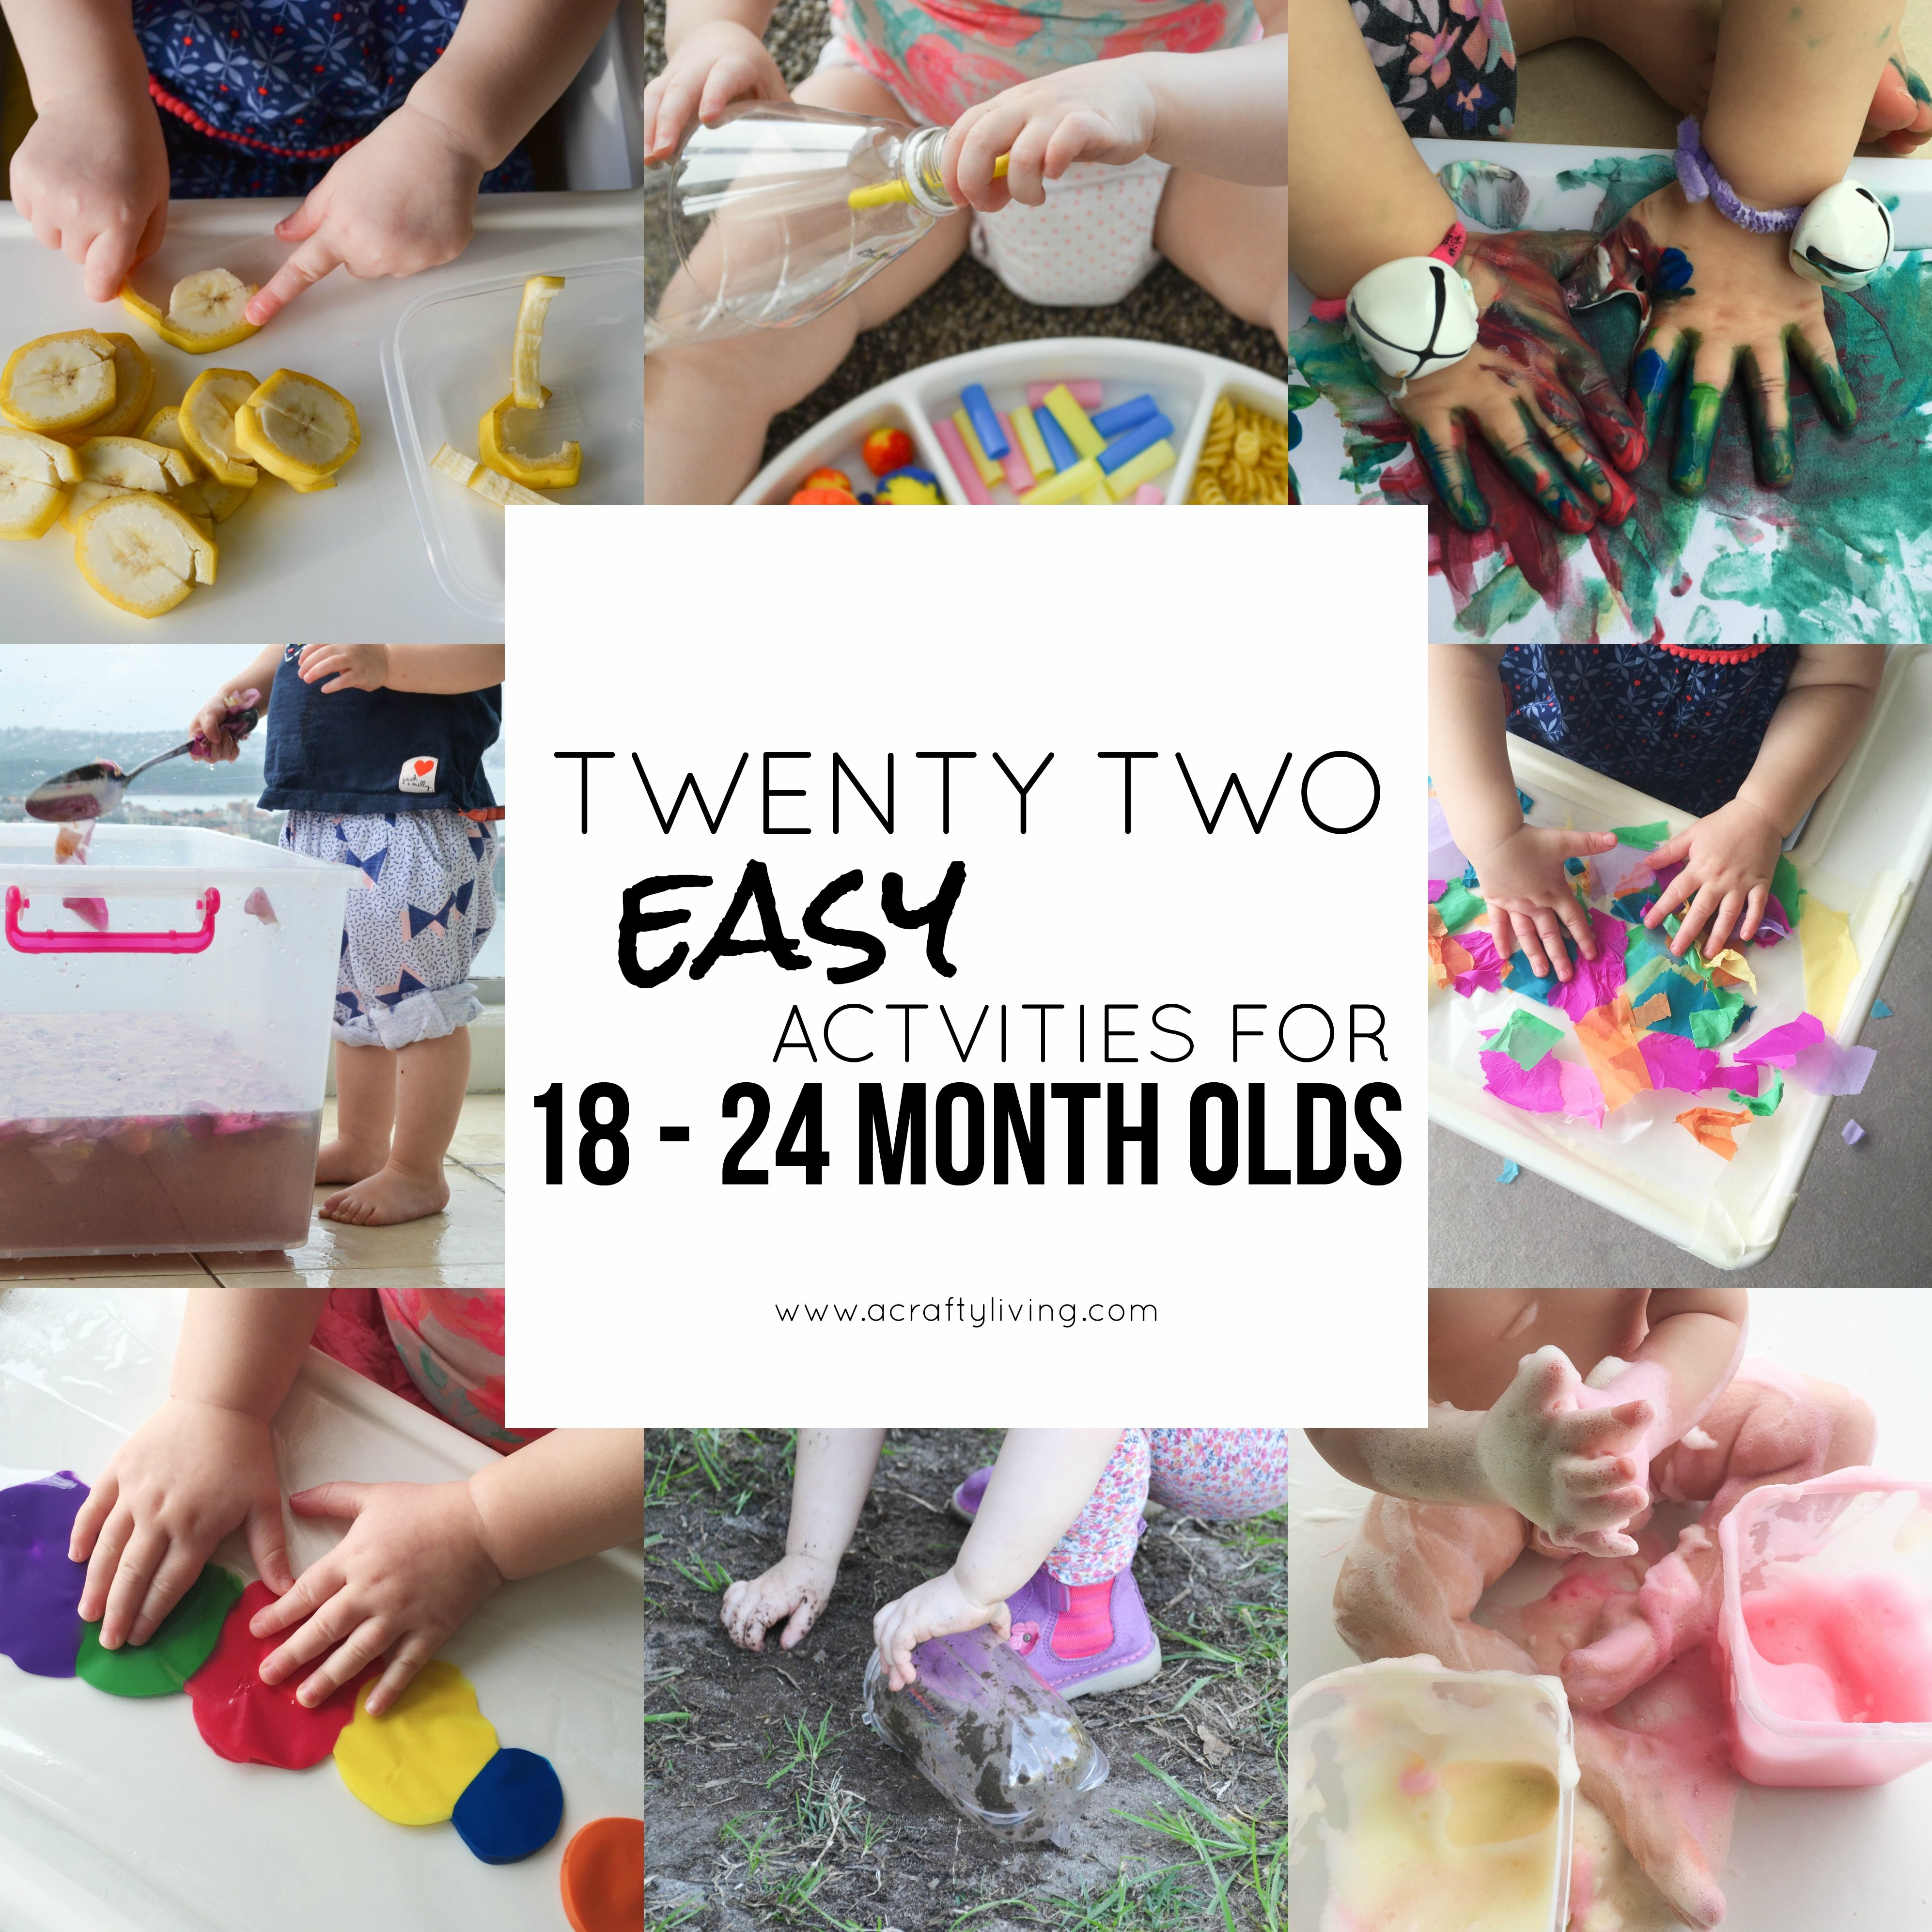 891d2e5ef 22 Easy Activities for 18 - 24 month olds!